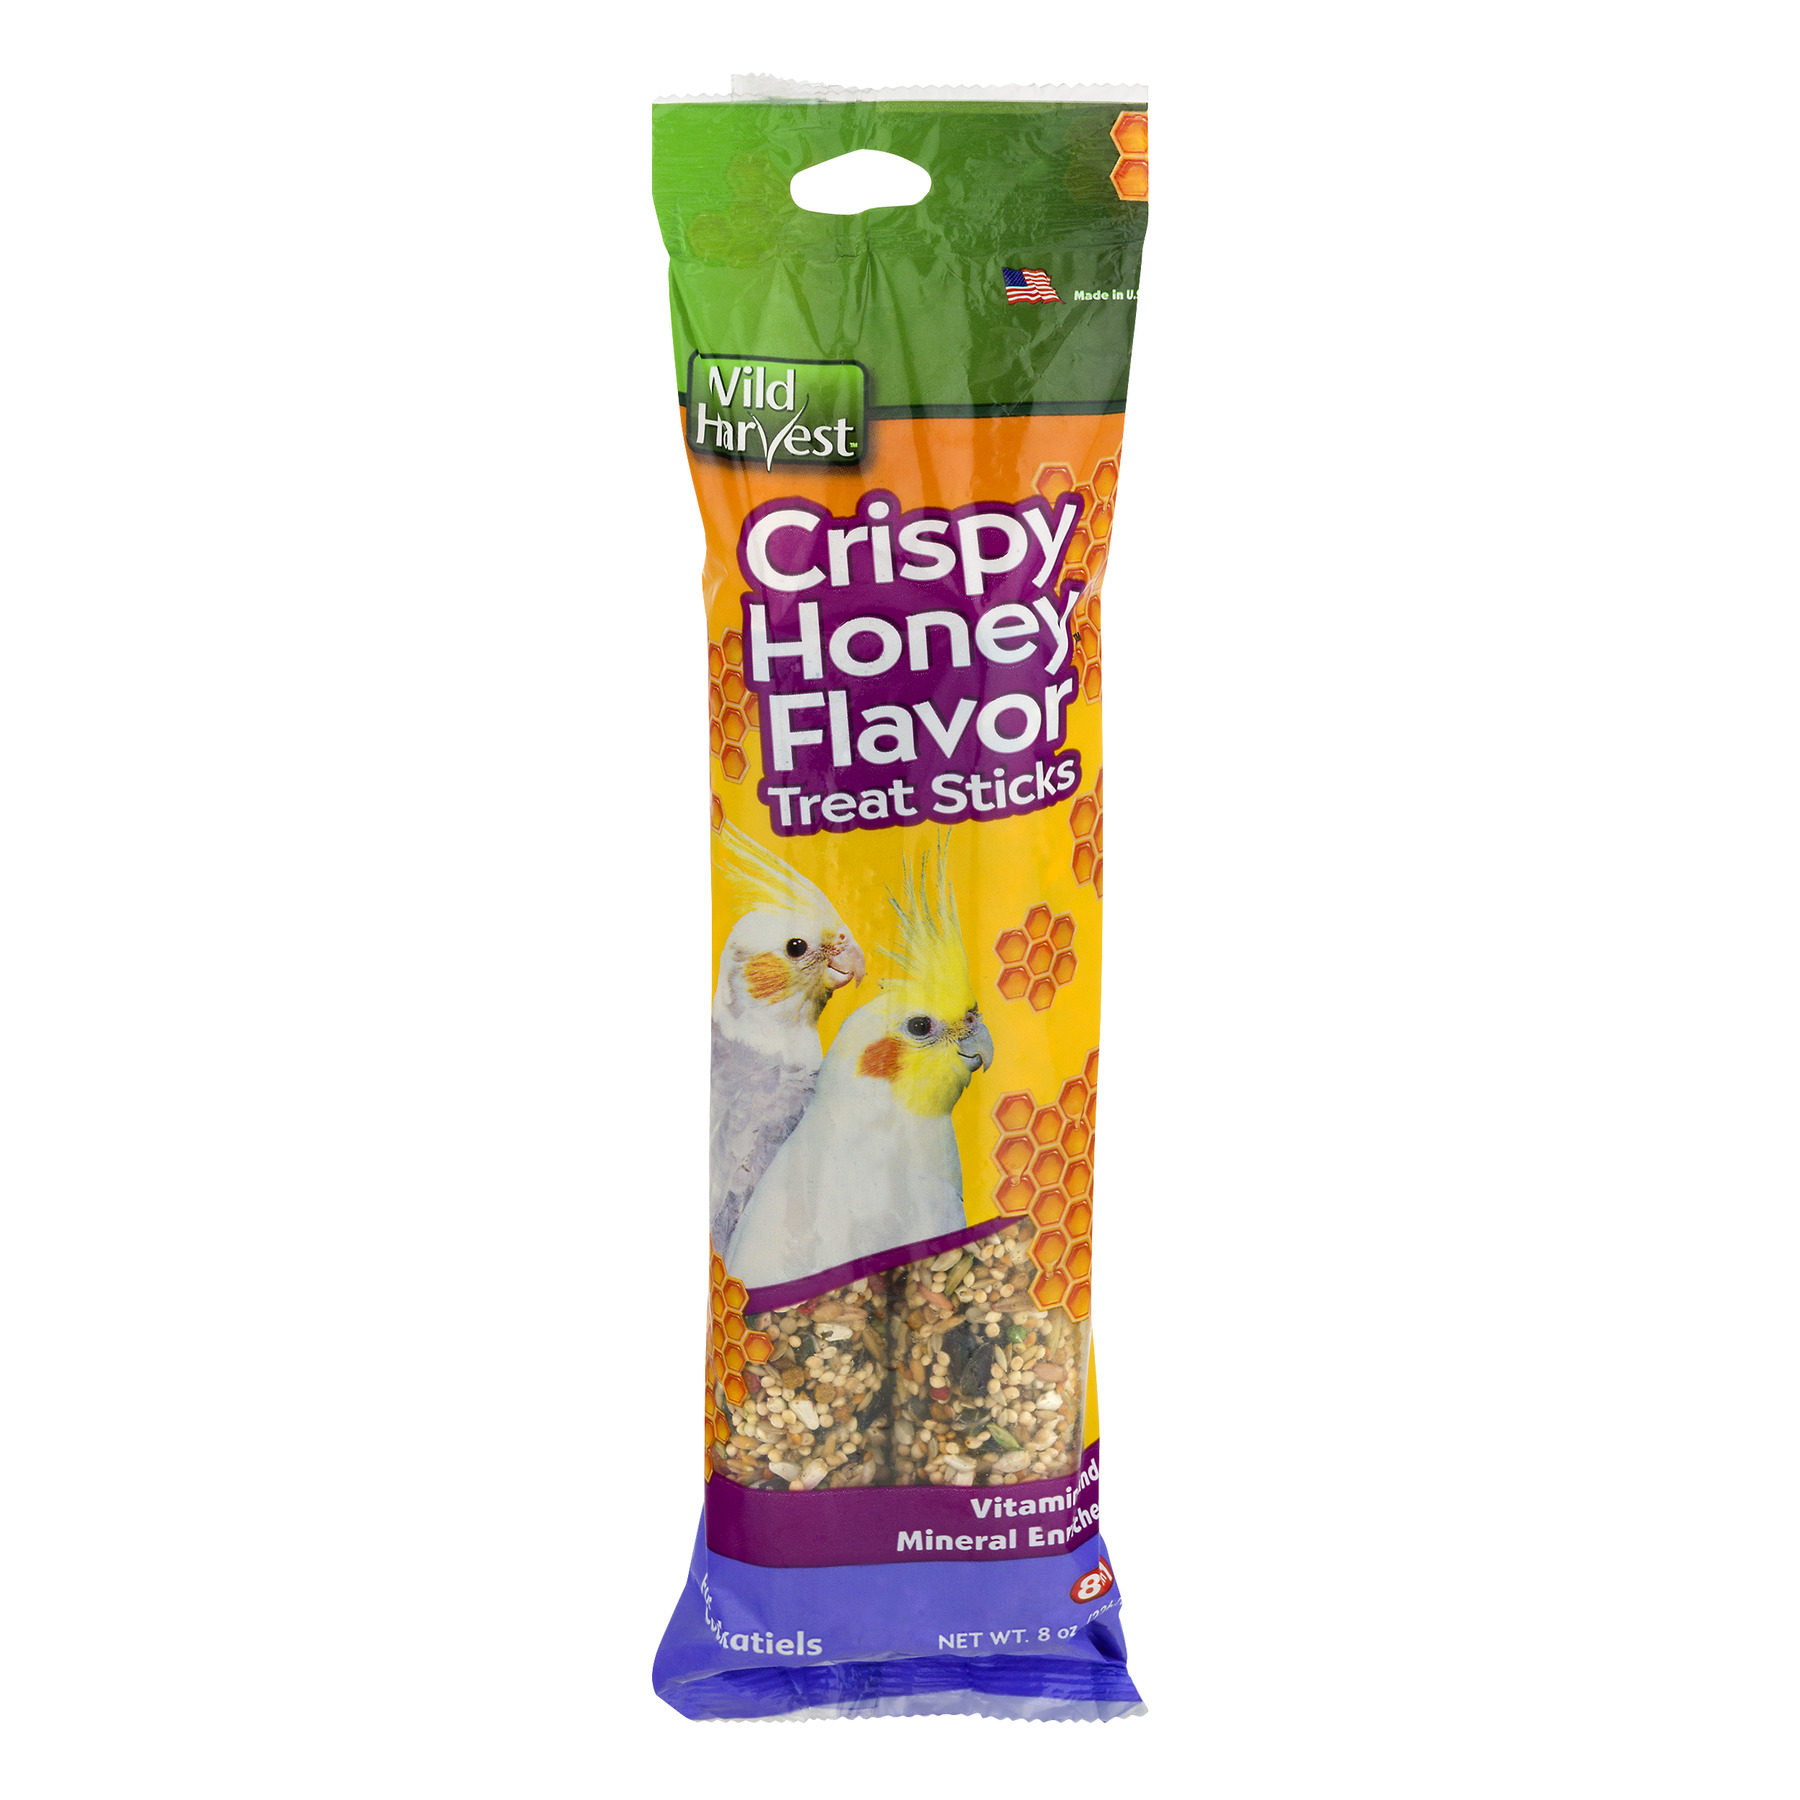 (2 Pack) Wild Harvest Crispy Honey Flavor Treat Sticks for Parakeets, 8 oz